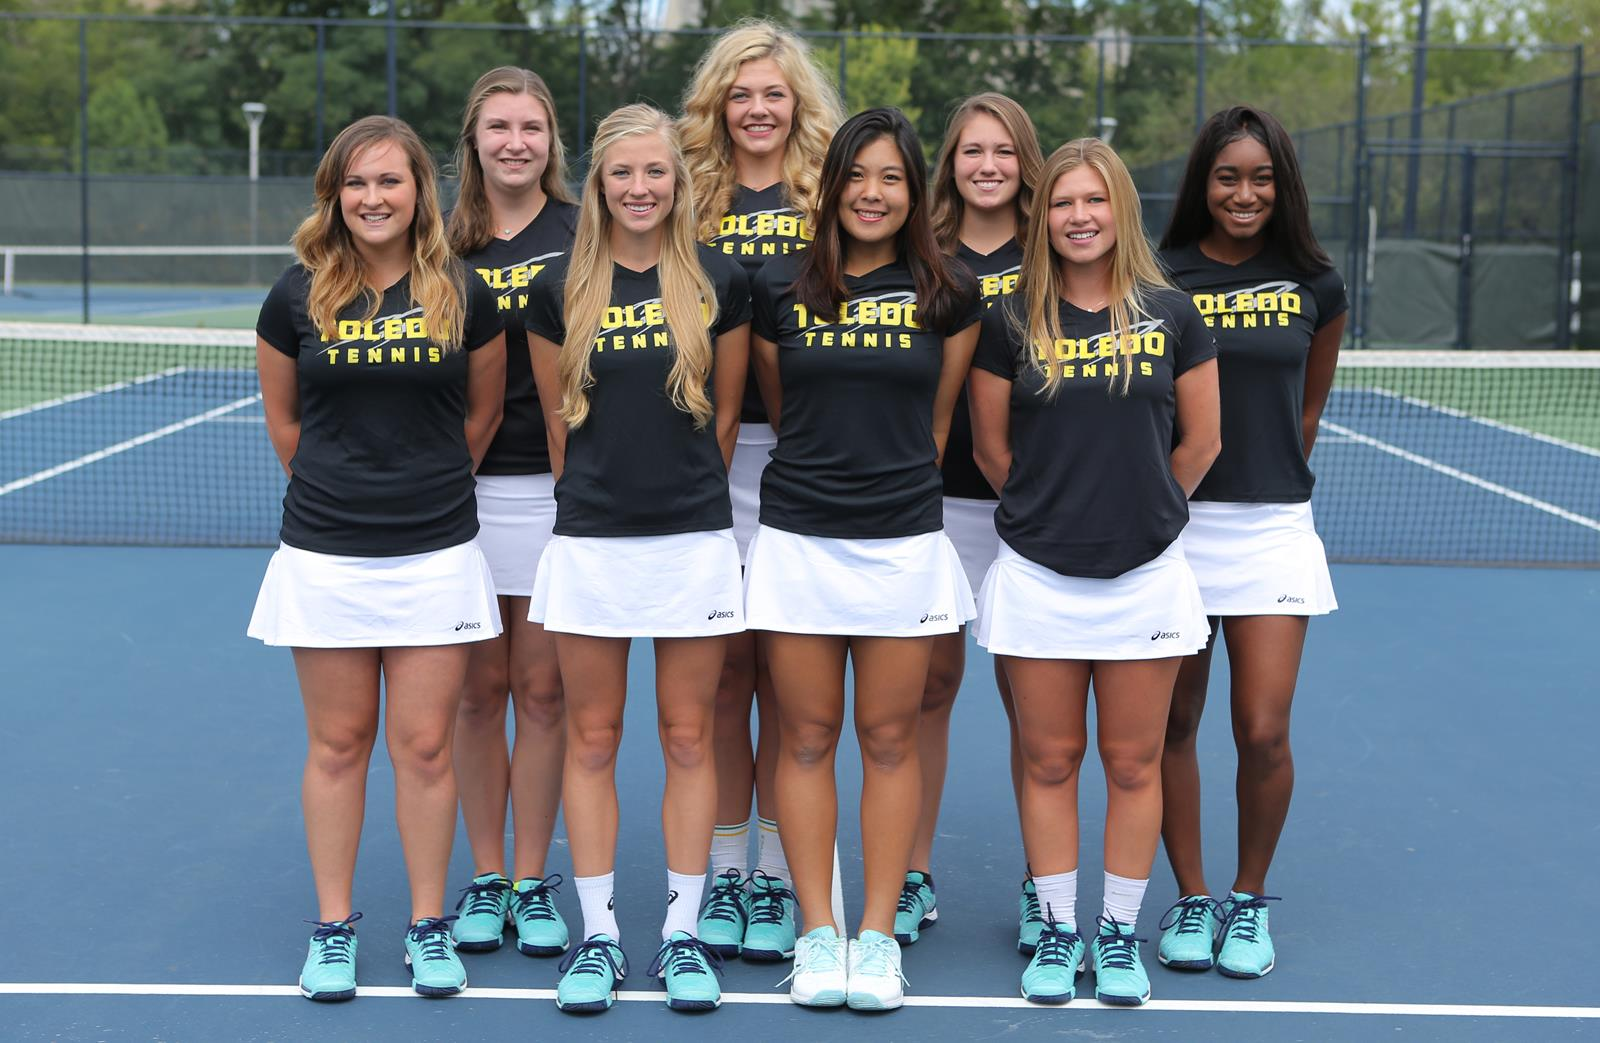 University of Toledo Athletics - 2016-17 Women's Tennis Roster